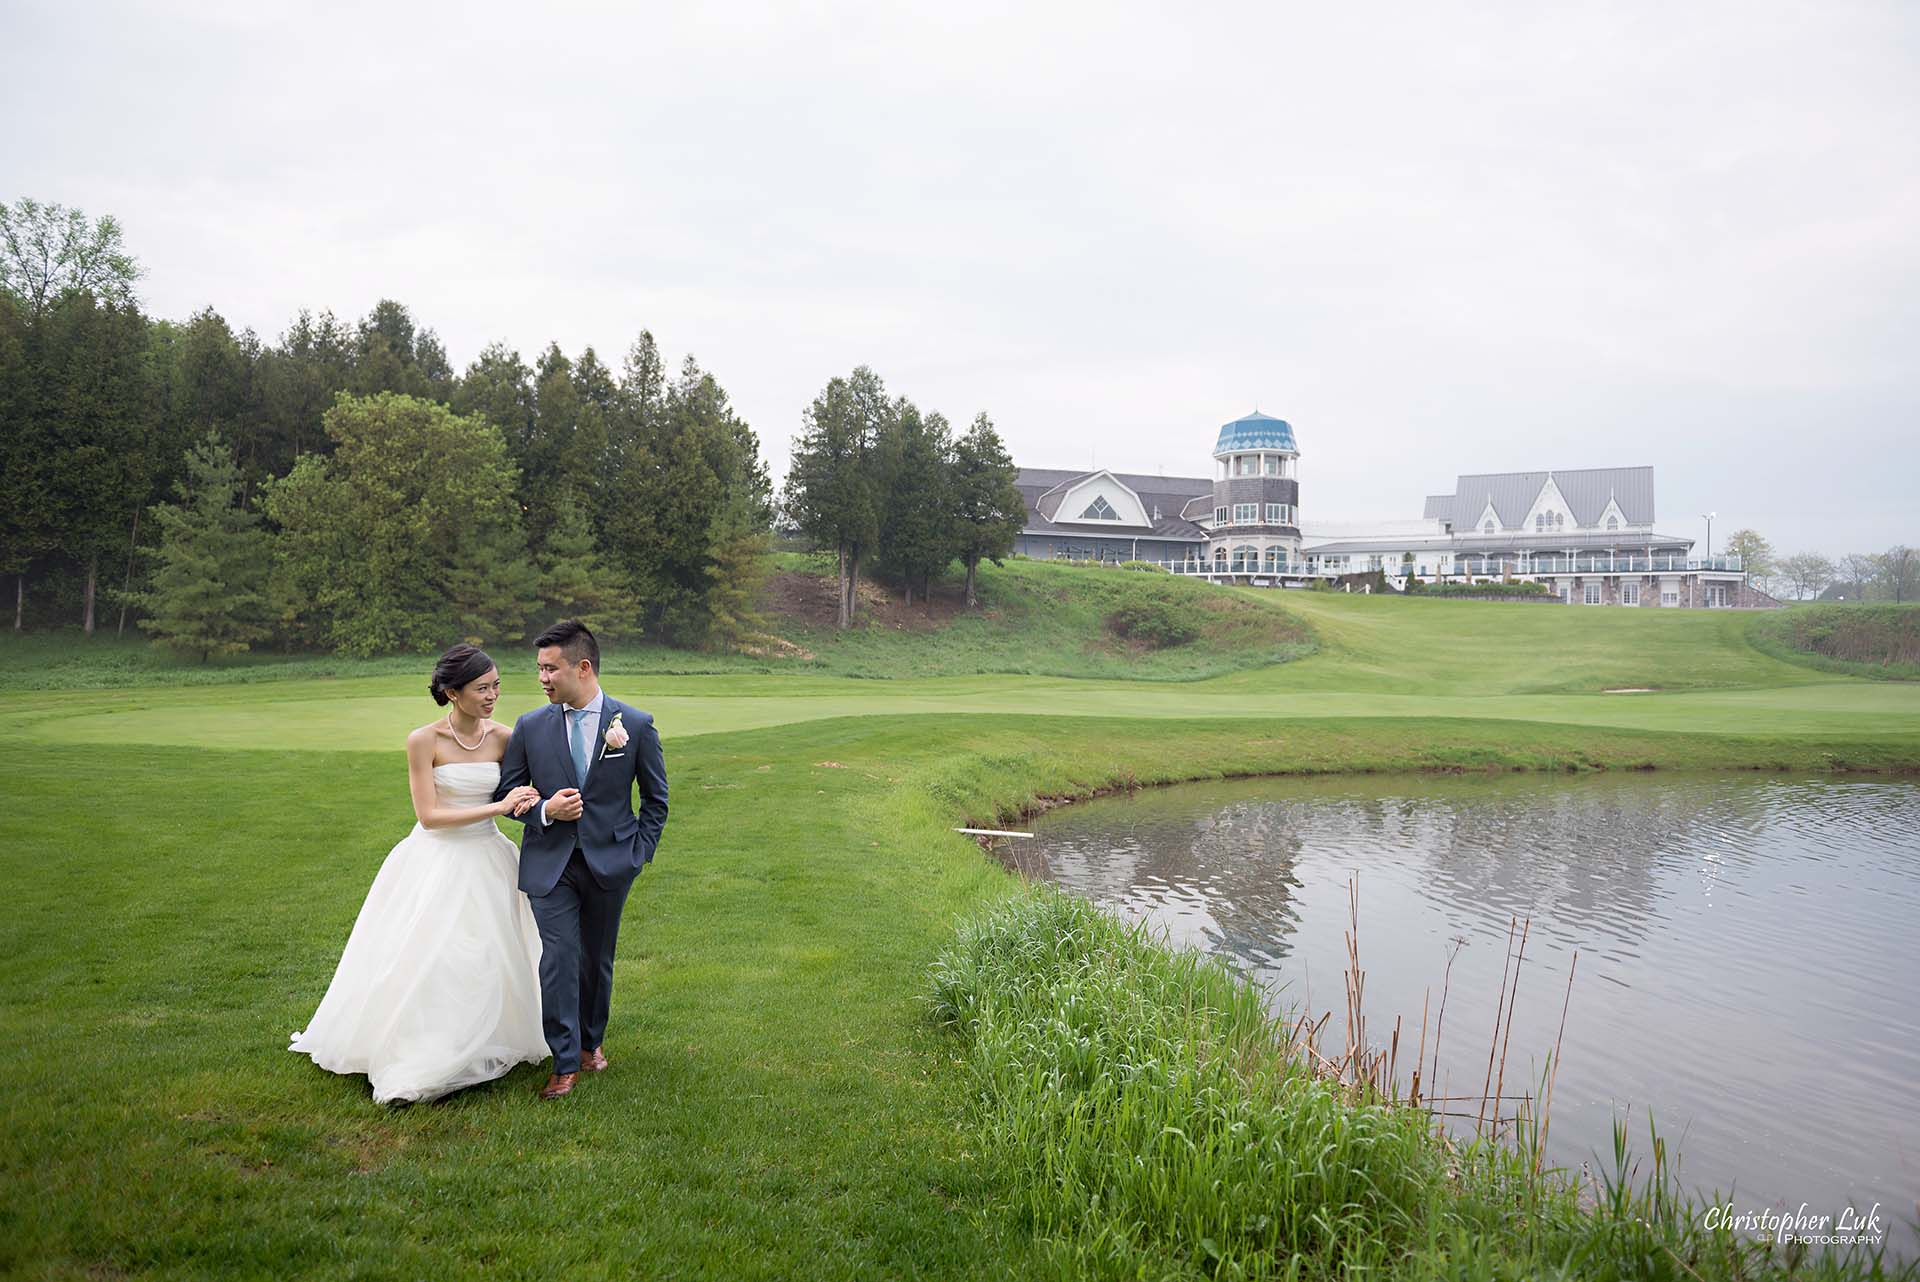 Christopher Luk Toronto Wedding Photographer Angus Glen Golf Club Markham Great Hall Dinner Reception Event Venue Green Field Sunset Bride Groom Natural Candid Photojournalistic Walking Together Green Pond Lake Clubhouse Landscape